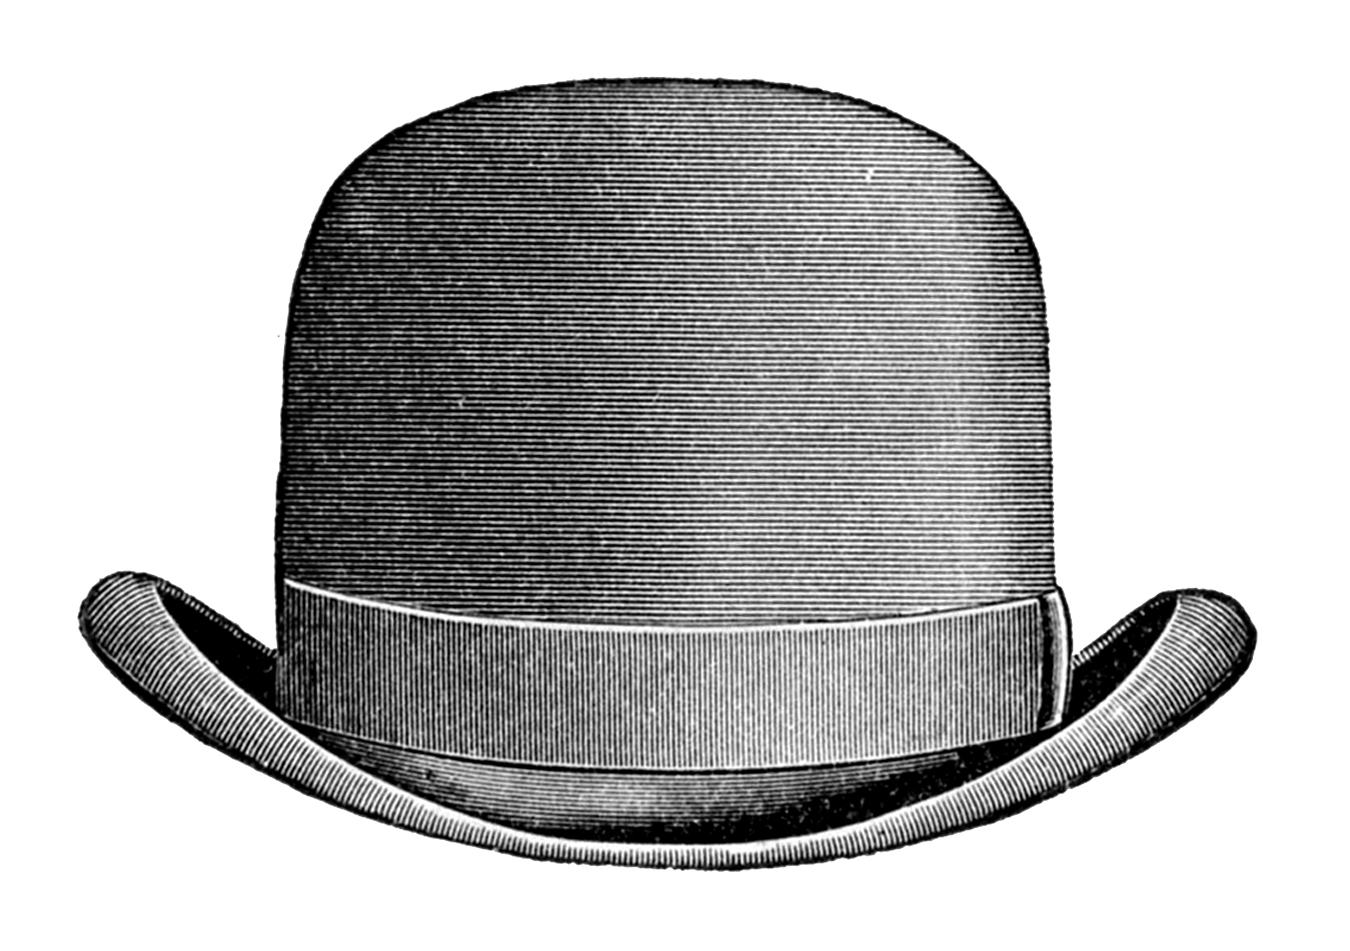 Hut clipart derby hat #12